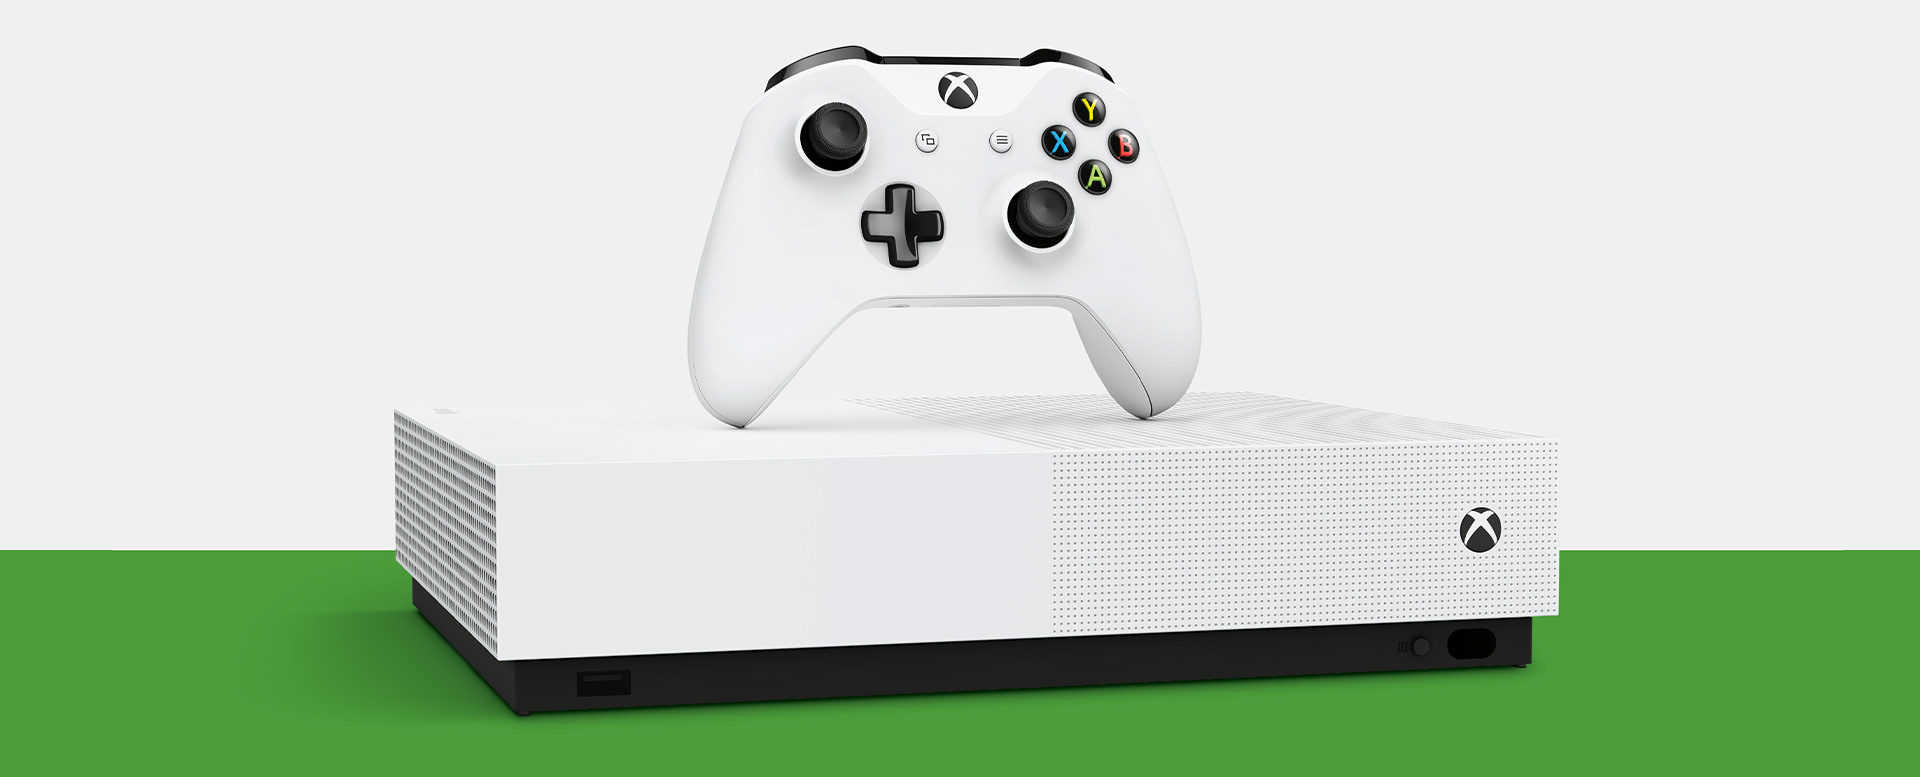 The New Xbox One S All,Digital Edition Buy Now